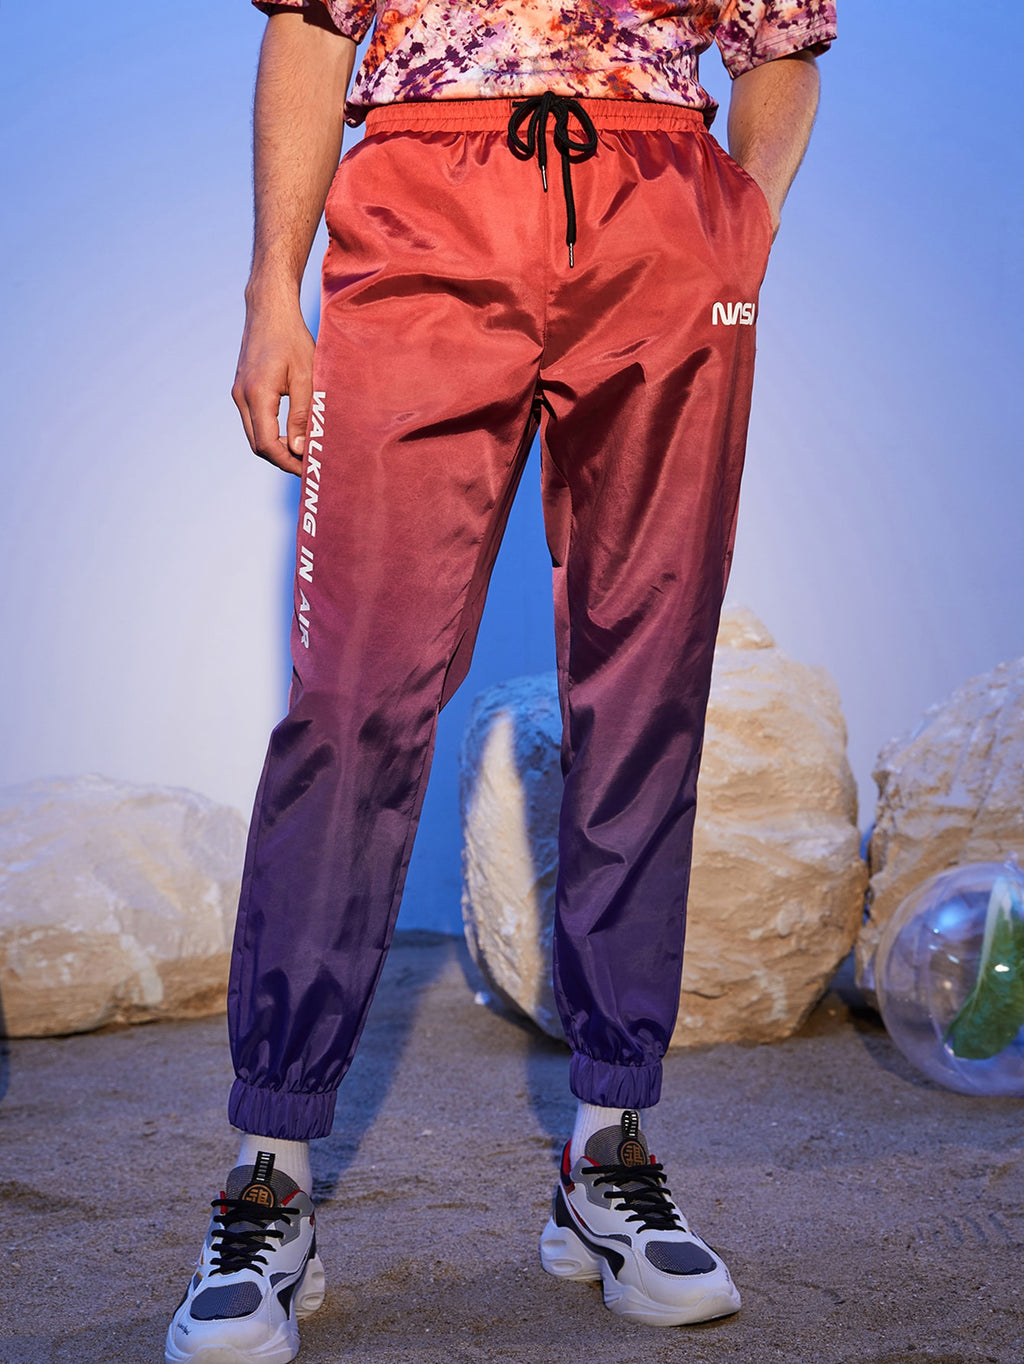 NASA Ombre Pants - This Is For Him